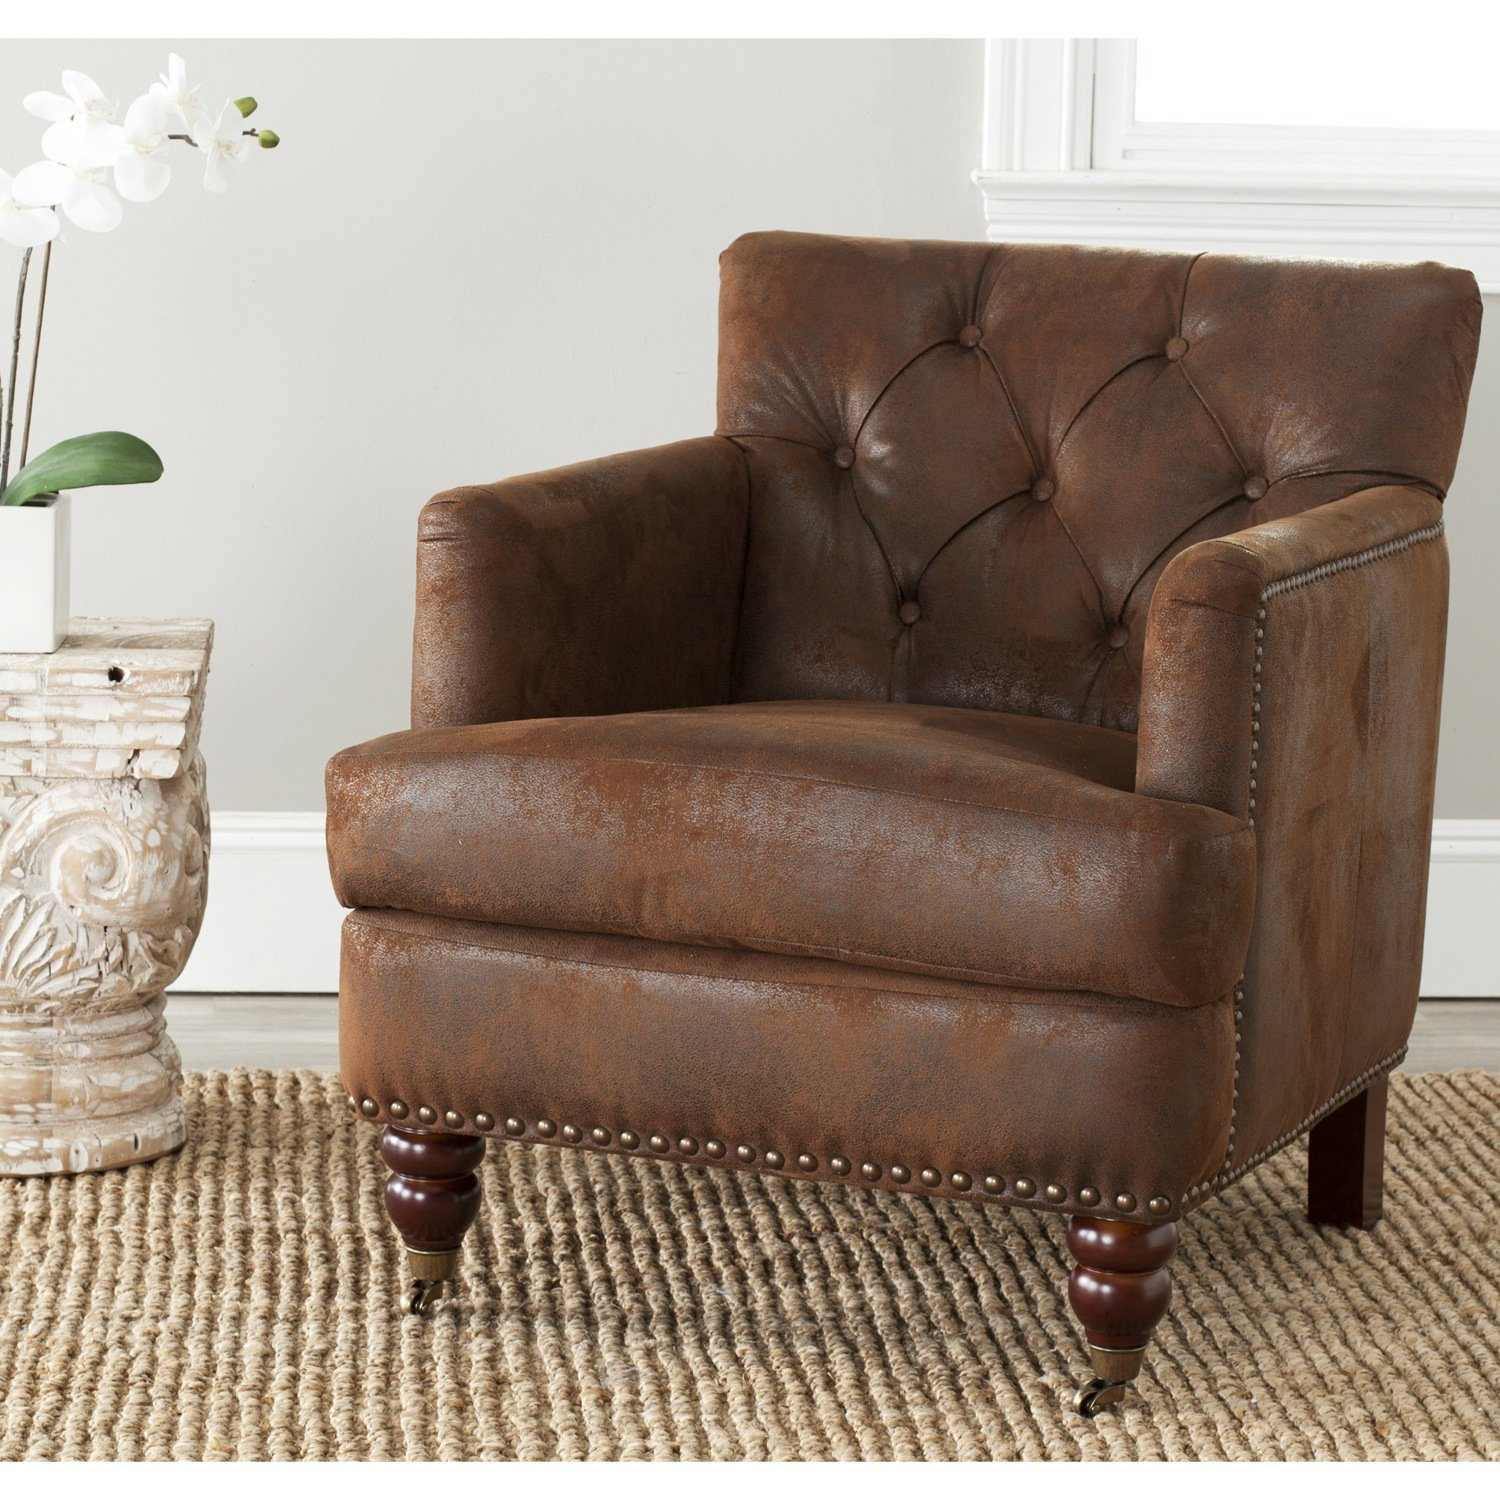 Amazon.com: Safavieh Hudson Collection Mario Antiqued Brown Club Chair:  Kitchen U0026 Dining Part 72